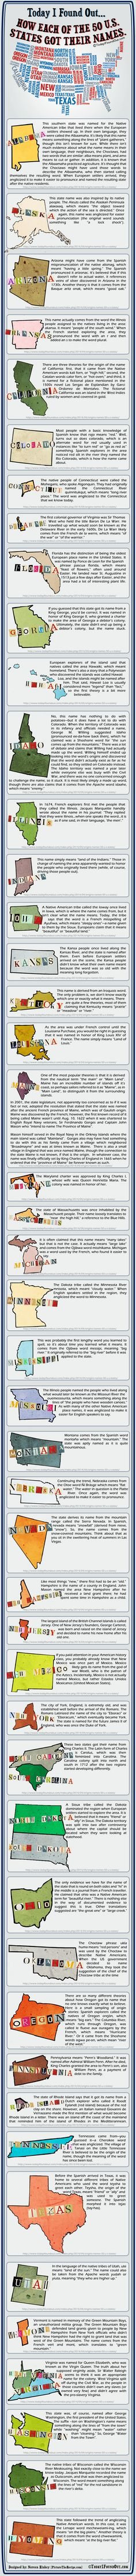 Did you ever wonder how each of the 50 US states got their names? #homeschool www.oakmeadow.com